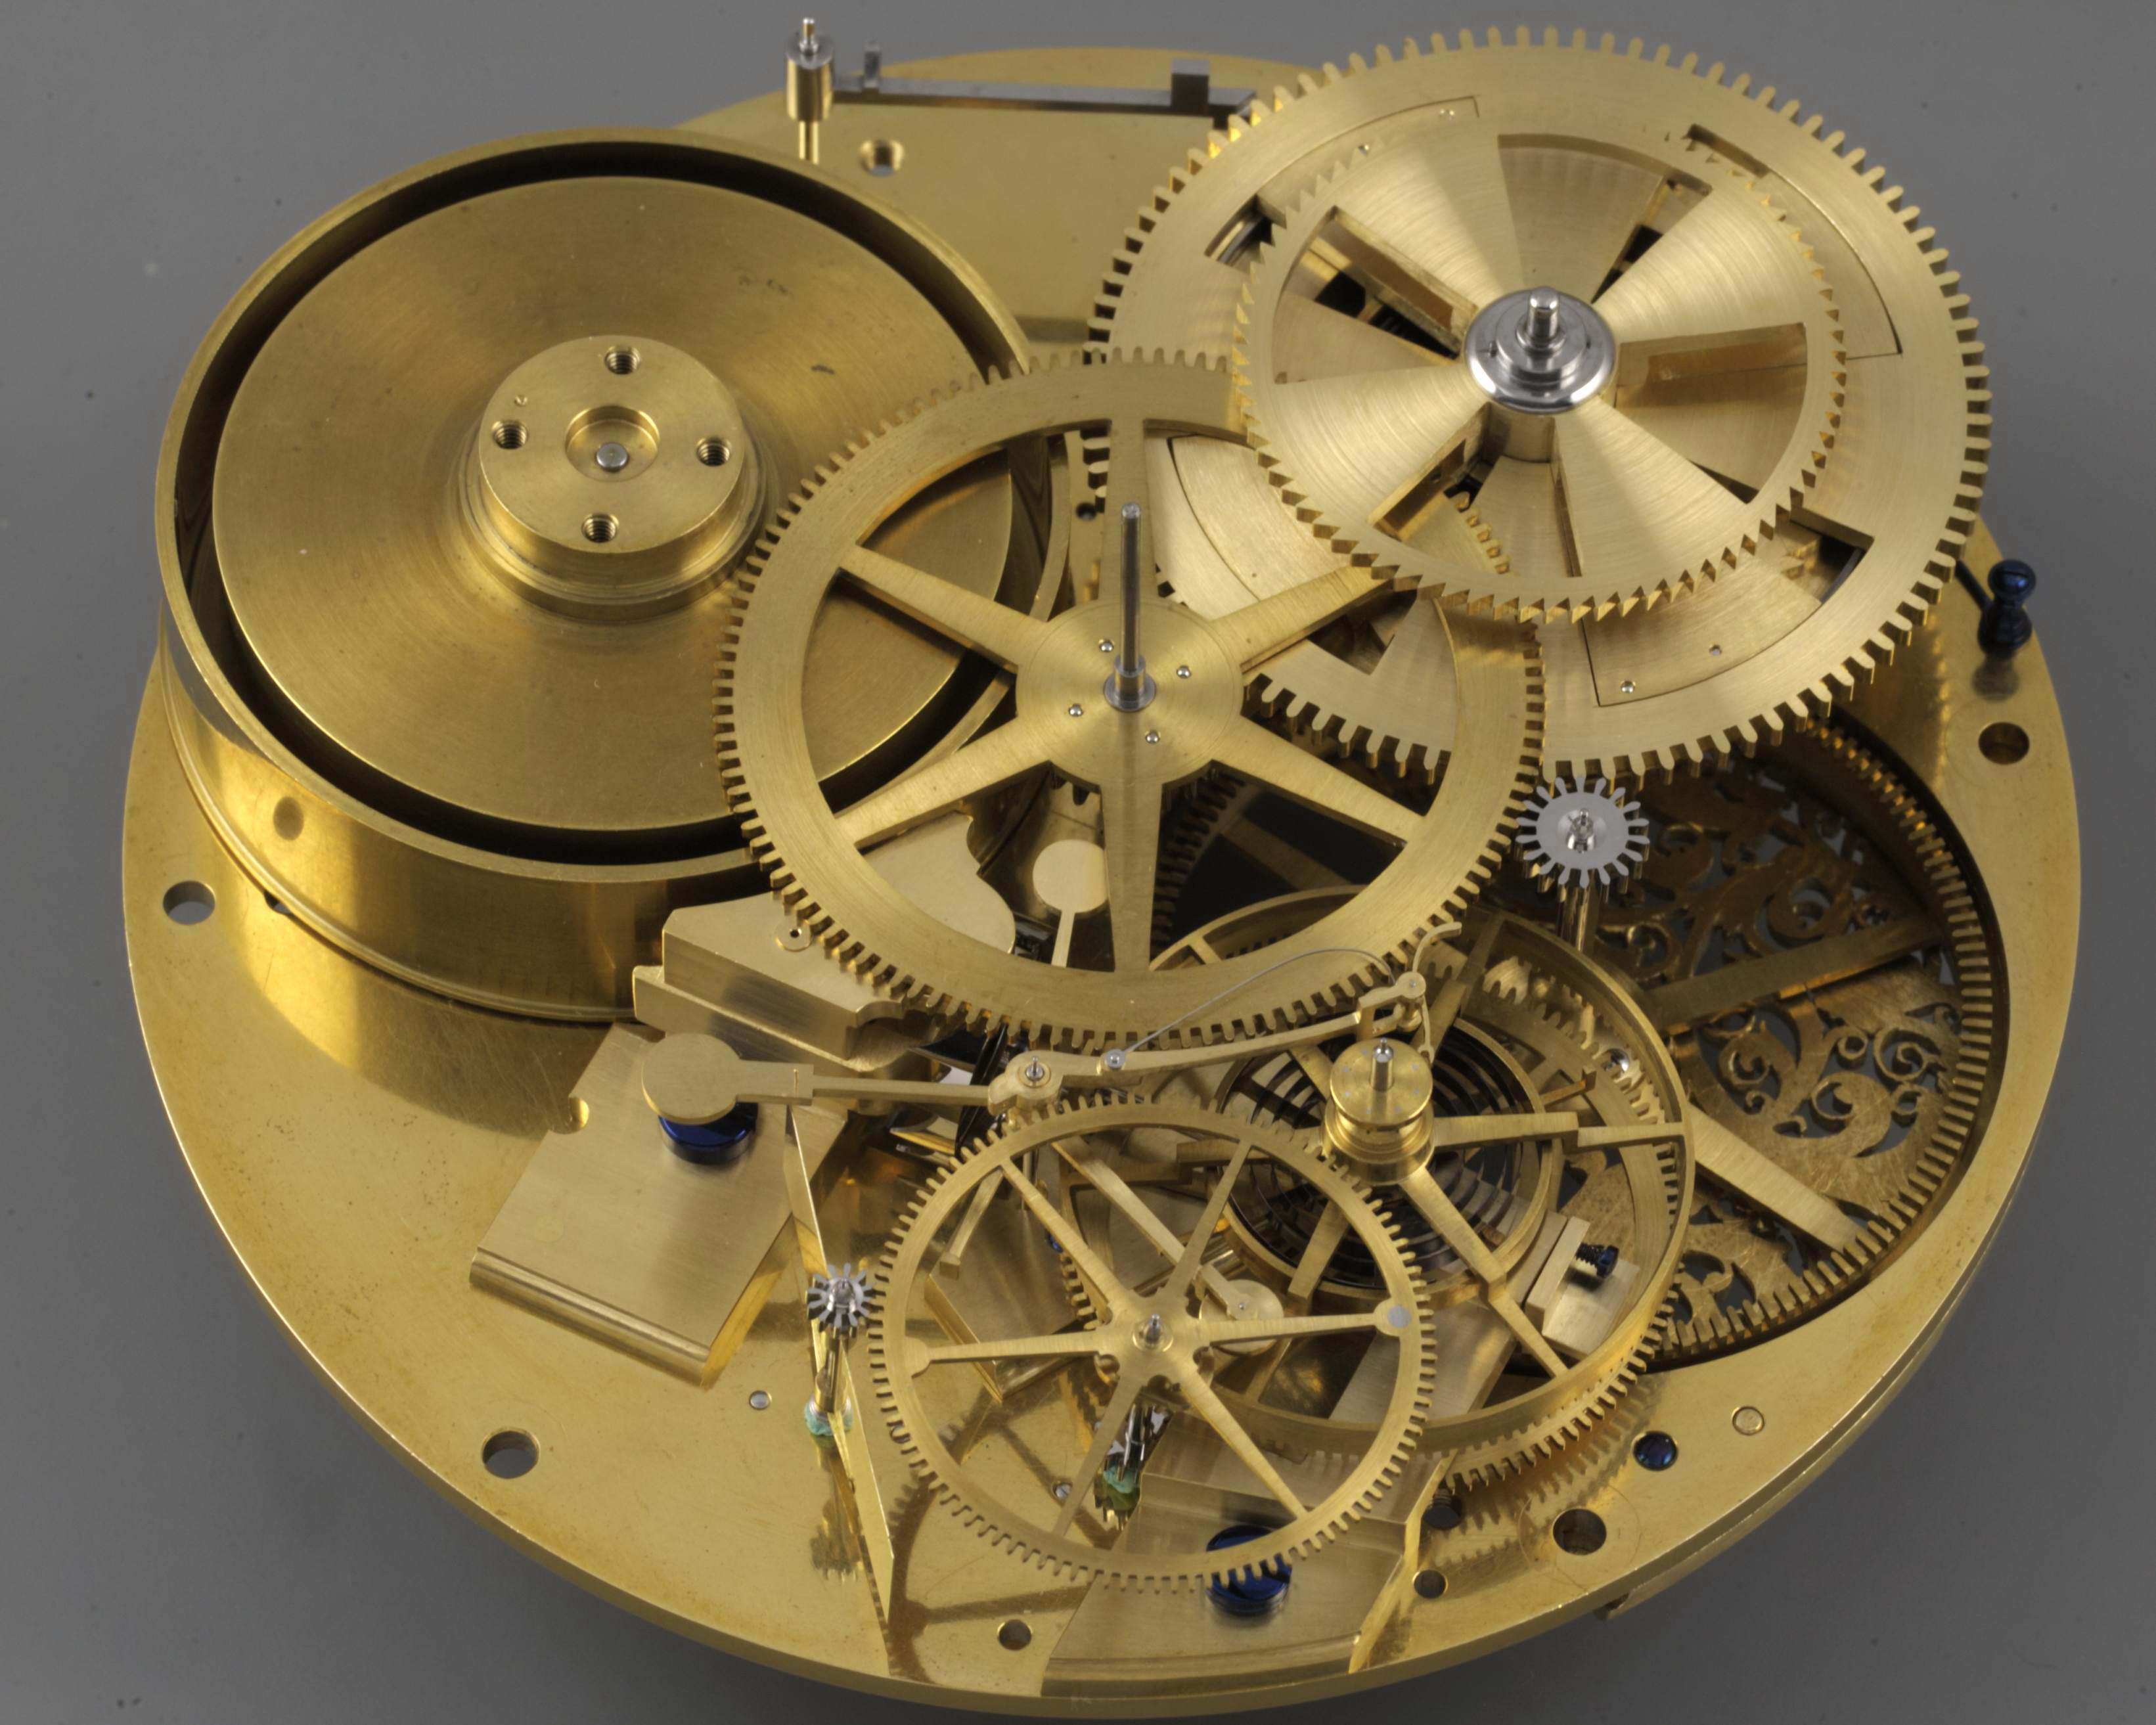 H4 completed watch movement gear train in Three Watchmakers' Unfinished Watches for A Collected Man London